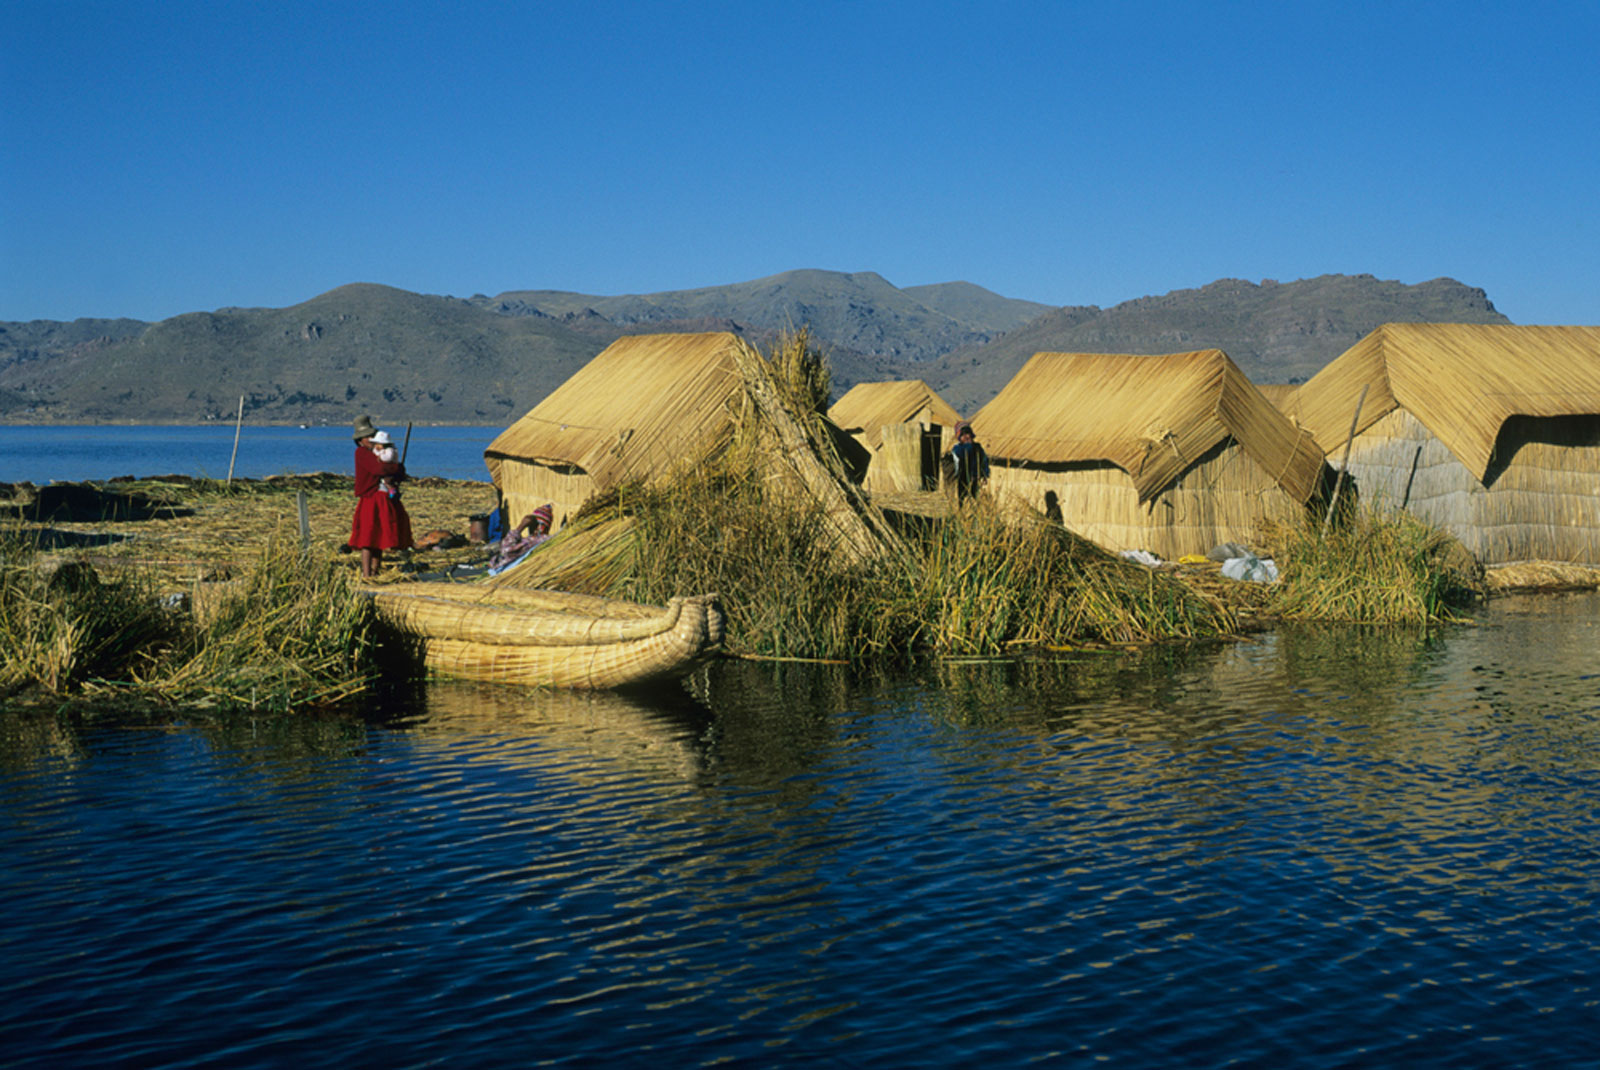 Freshwater Life village in South America on the water